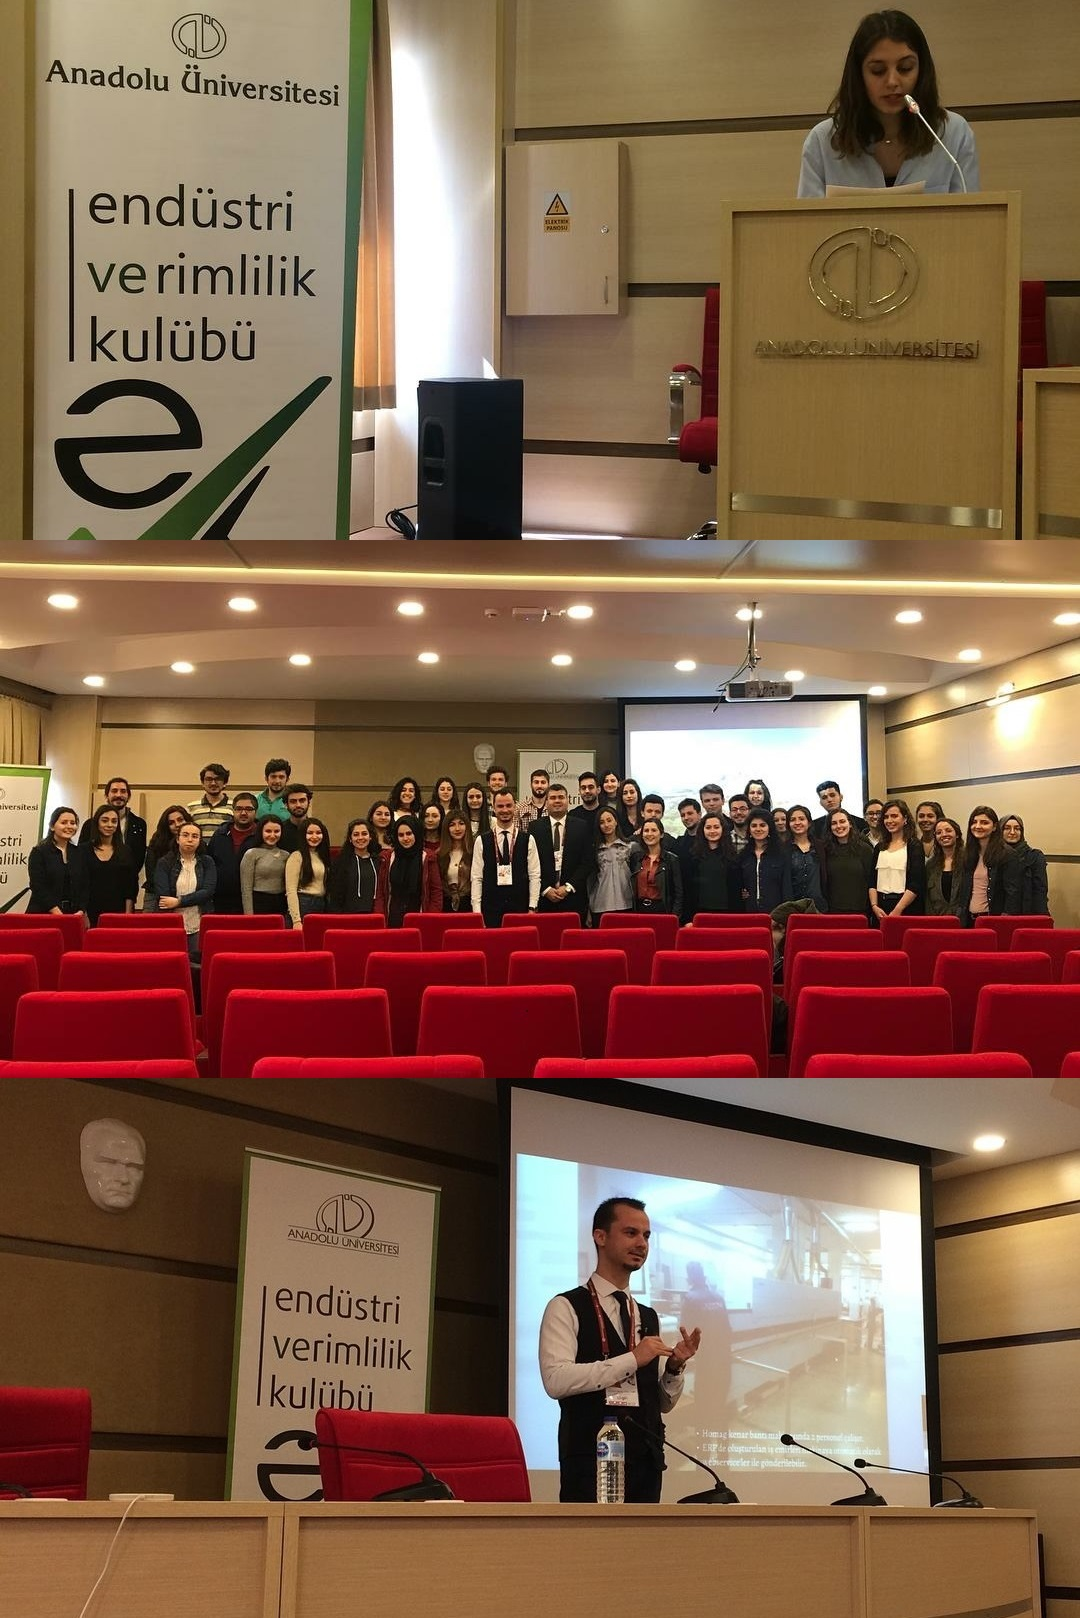 En-ERP 30 has been Launched at The Anadolu University